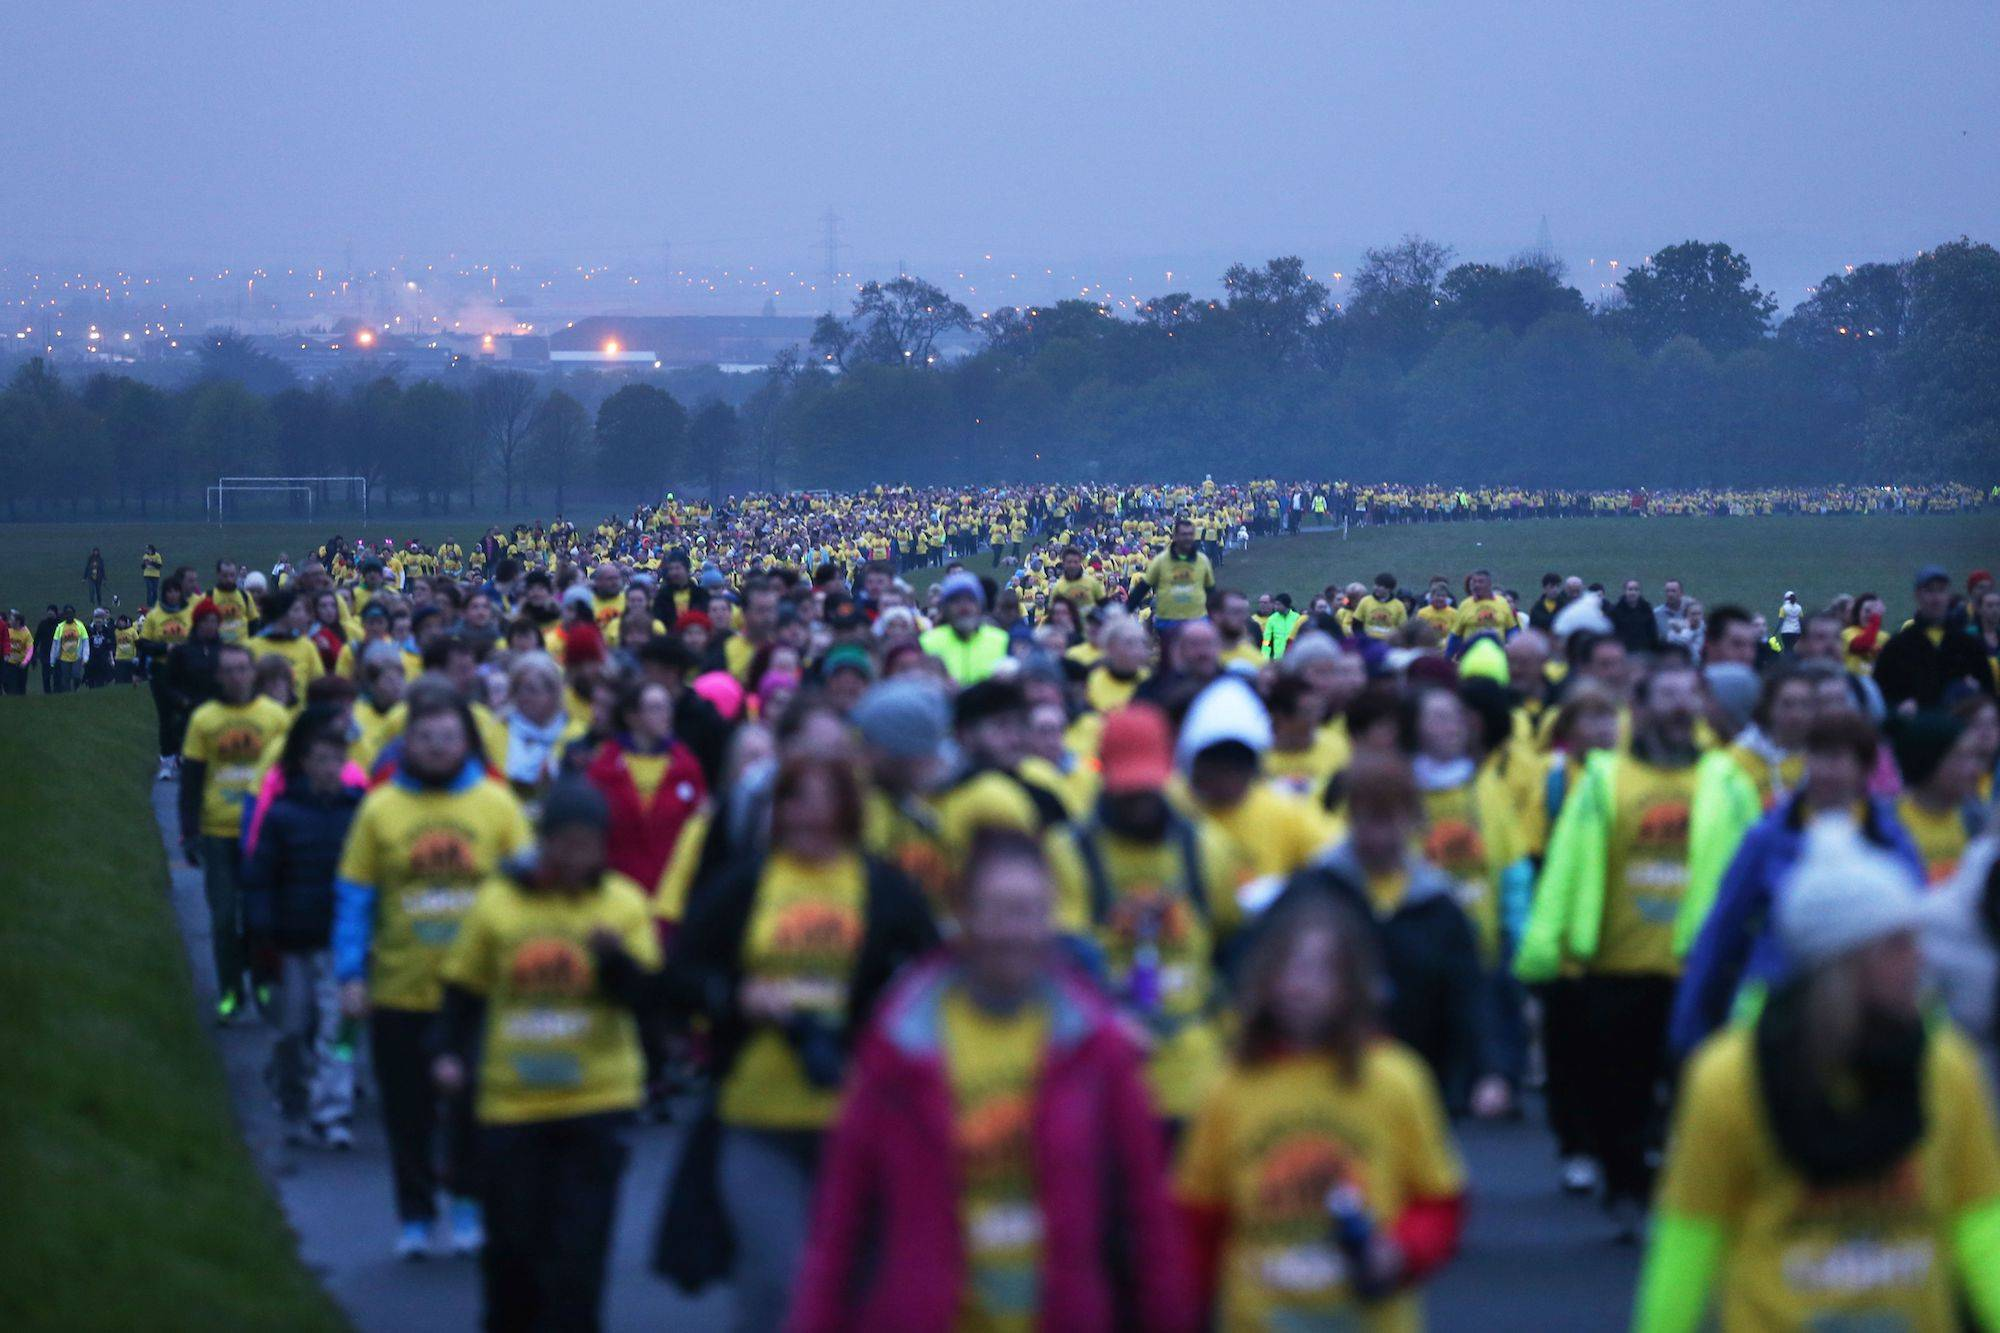 09/05/2015. An estimated 100,000 people turned out for dawn walks for Pieta House's annual Darkness Into Light fundraising and awareness event. The 5km walk, supported by Electric Ireland, got underway at 4.15am on Saturday morning, 9th May in 80 locations in Ireland and across the world. Families, friends, children, colleagues and even pets turned out in locations from Wicklow to Washington to walk in solidarity for suicide prevention. Melbourne and Perth were amongst the first cities to set off, with an estimated 4000 people walking in Australia. They were closely followed by London, Manchester and Glasgow where almost 1500 people walked in cities across the UK. The walks finished up in New York, Toronto, and Chicago amongst others where it's estimated 1700 people participated in the walk. Pictured are people this morning in Dublin's Phoenix Park. Photography: Sasko Lazarov/Photocall Ireland